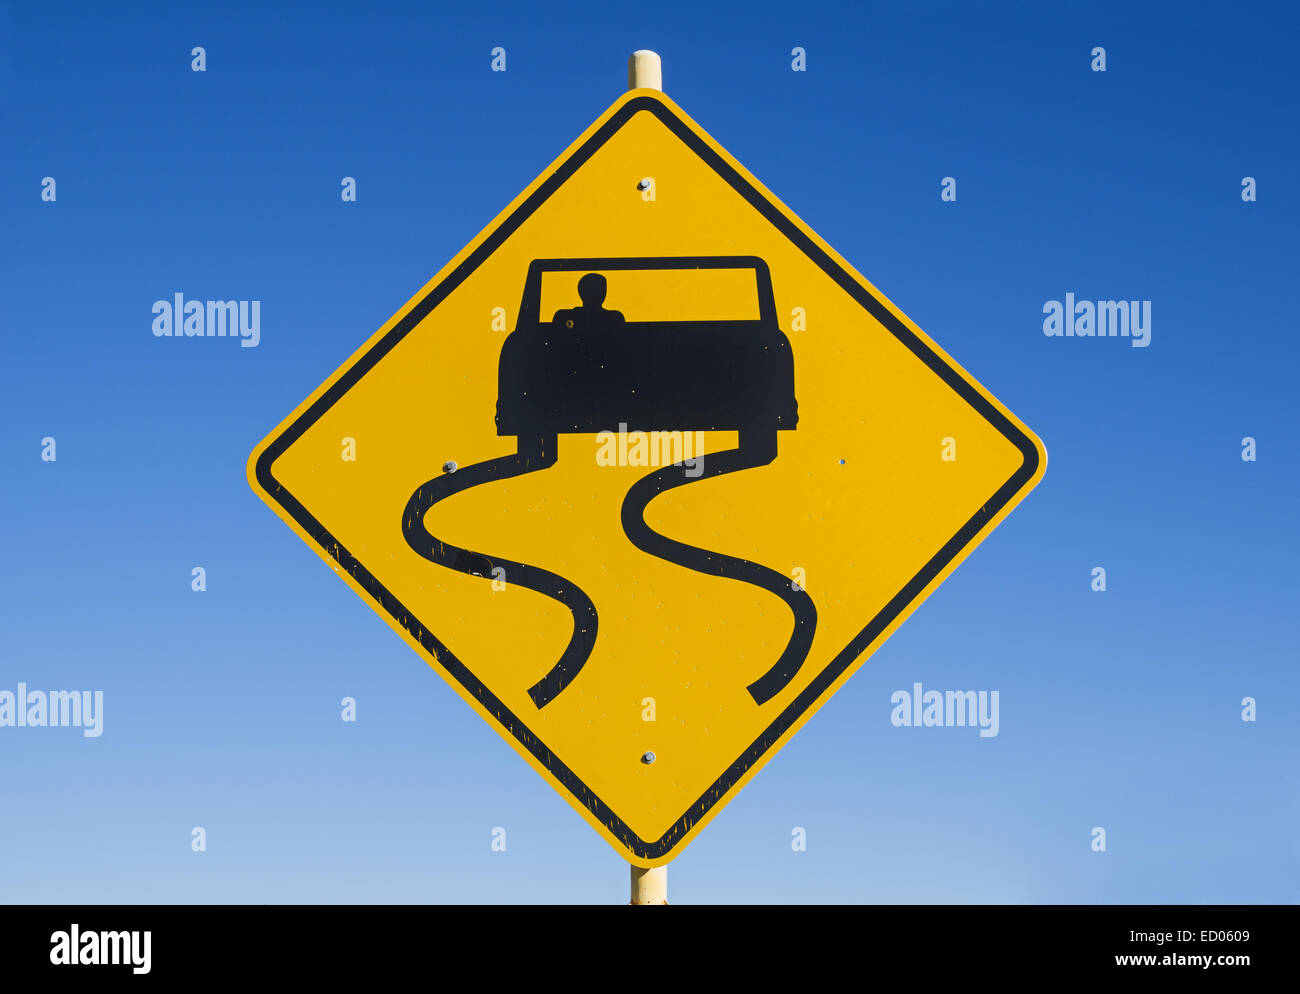 yellow and black caution slippery road sign with car and skid marks with blue sky background - Stock Image